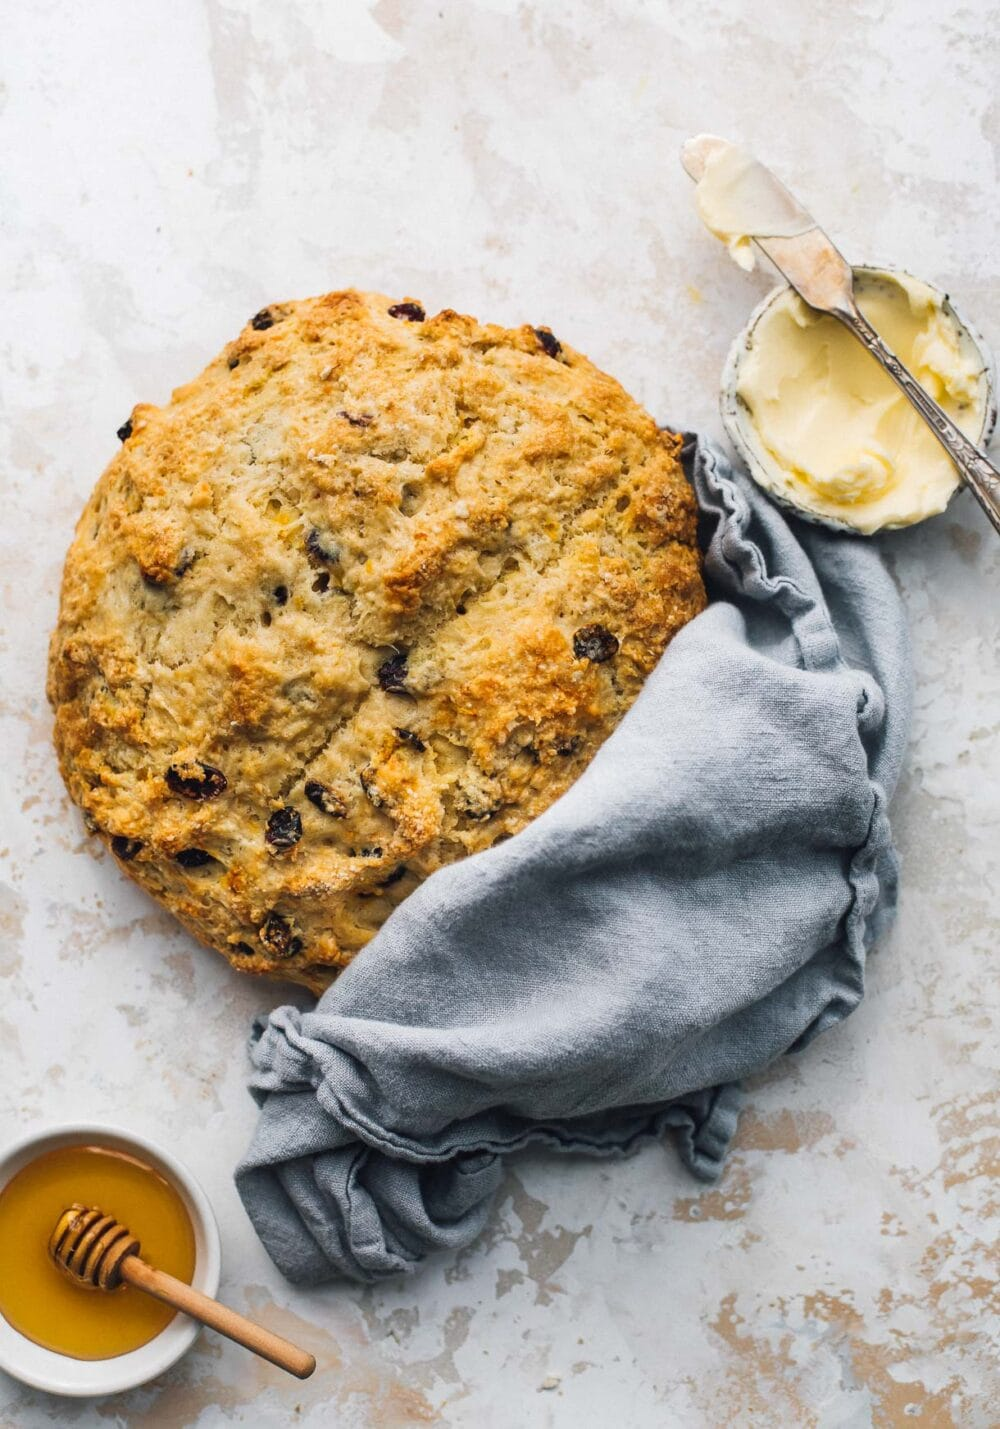 sourdough discard soda bread with a blue cloth wrapped around it, honey in a small bowl and butter in a small bowl next to it.